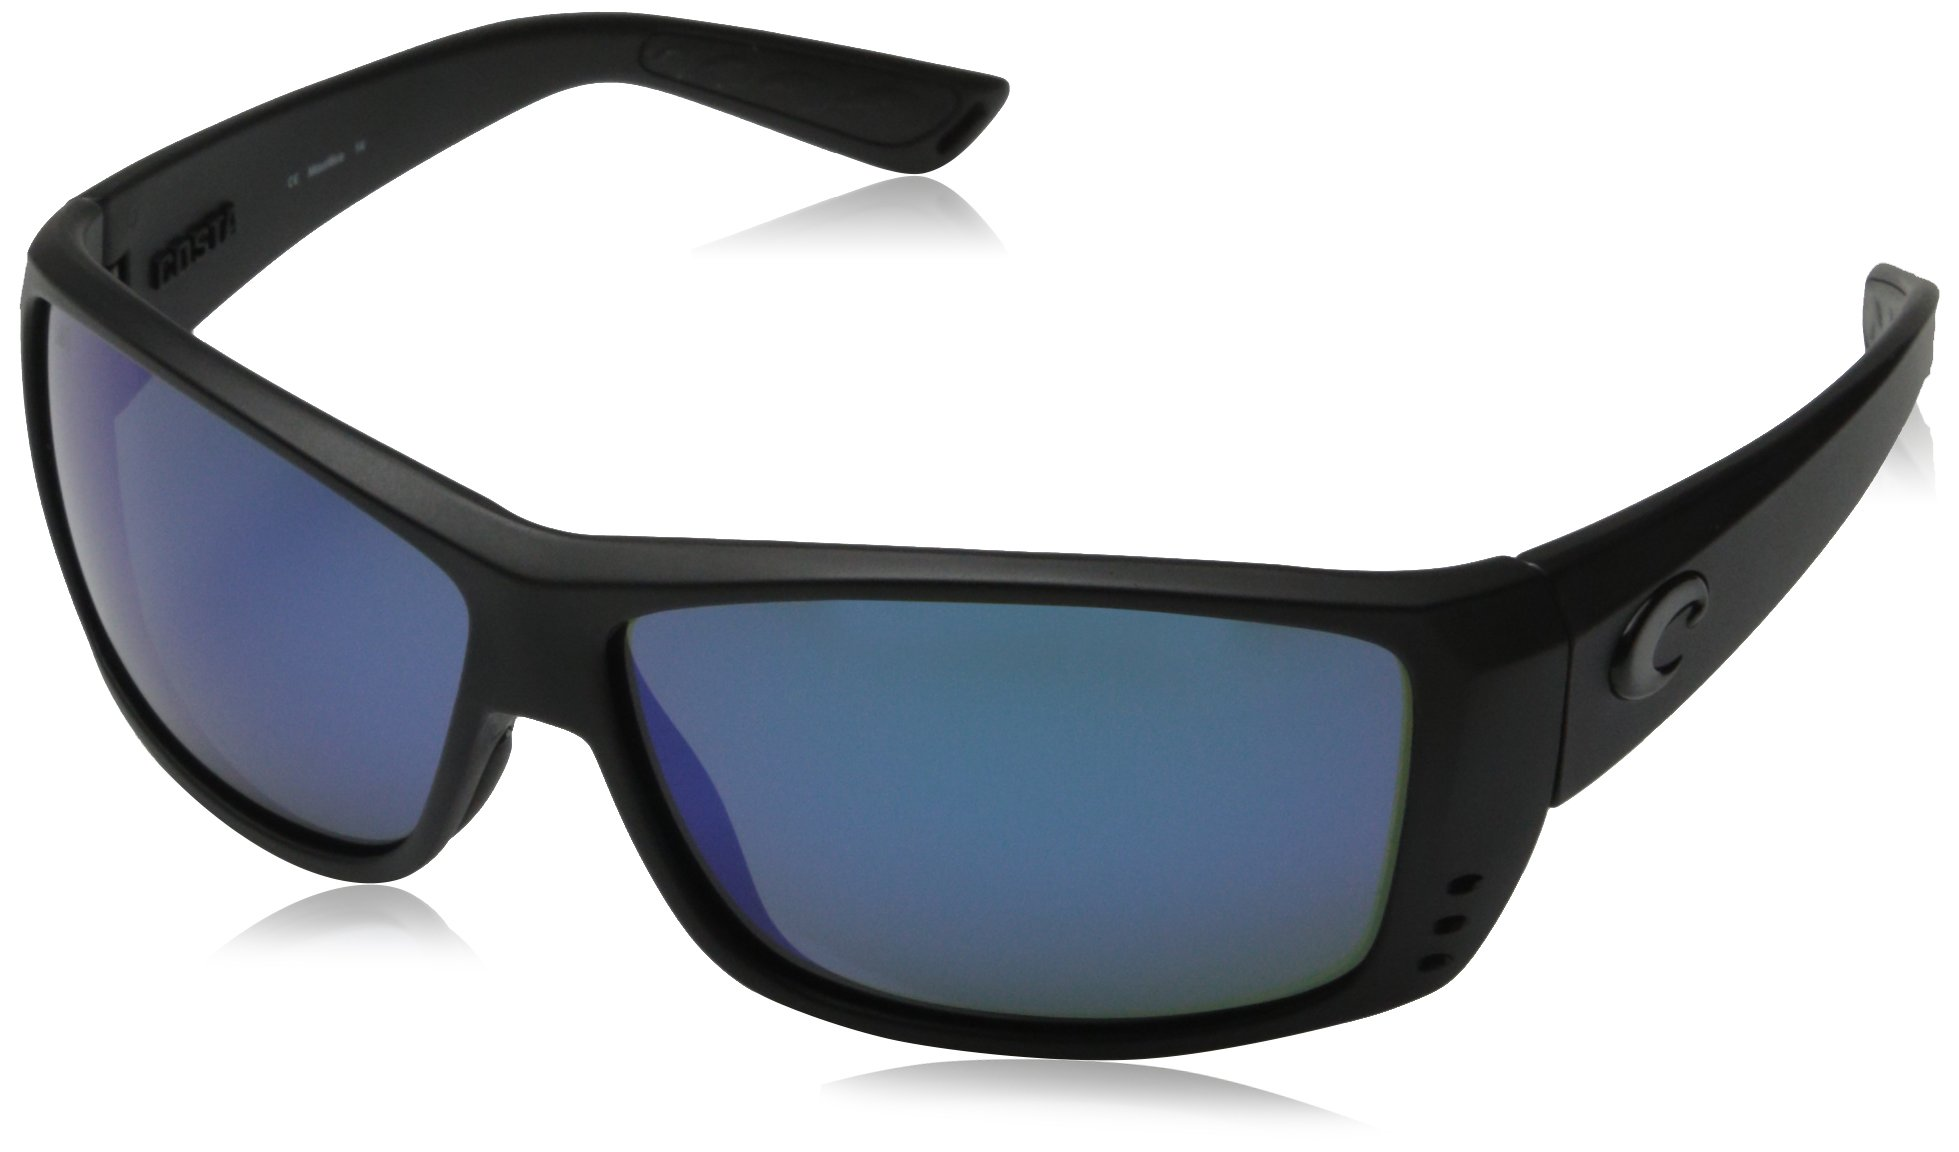 Costa Del Mar Cat Cay Sunglasses, Blackout, Gray 580 Glass Lens